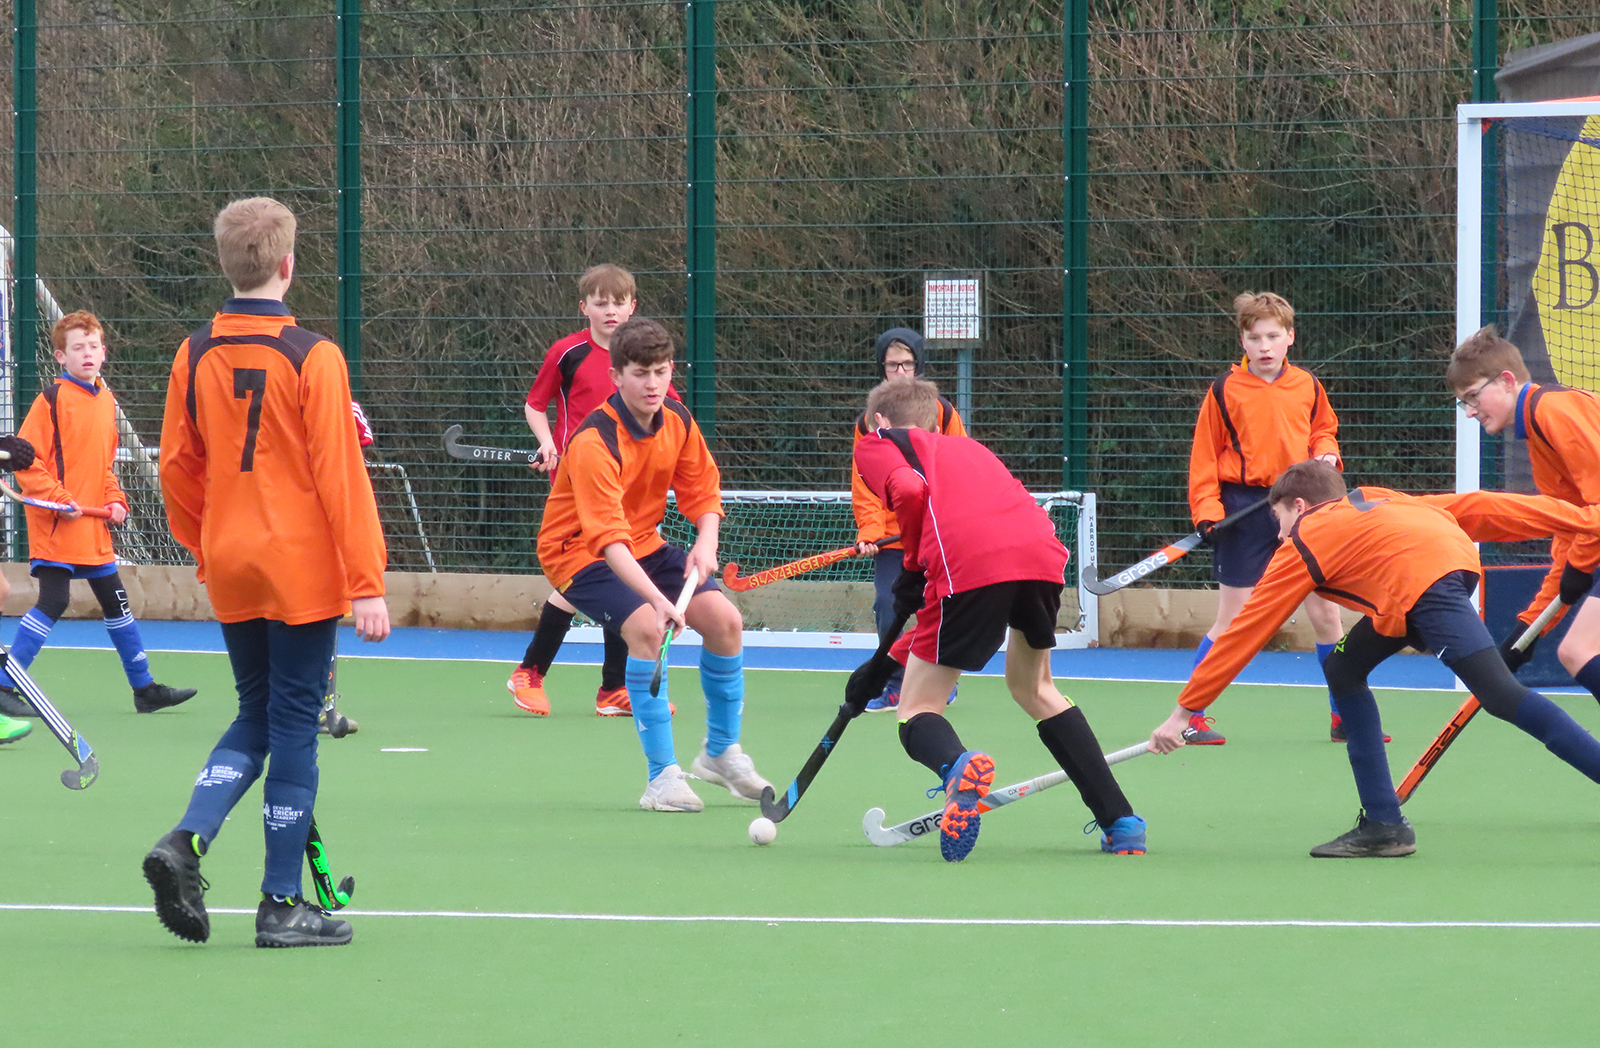 Year 9 hockey tournament - February 2020